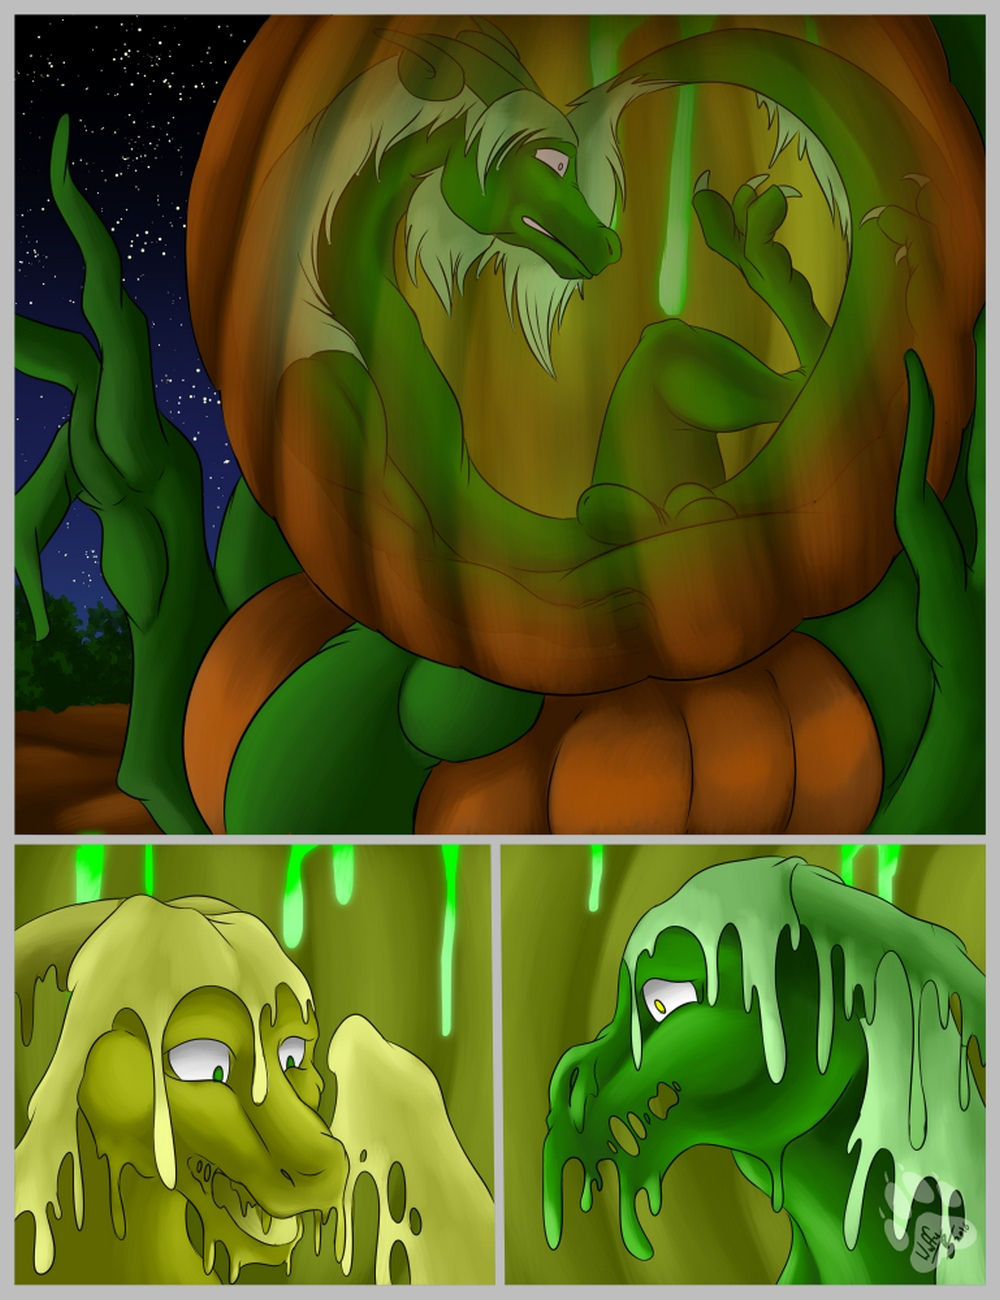 The-Pumpkin-Patch 23 free sex comic